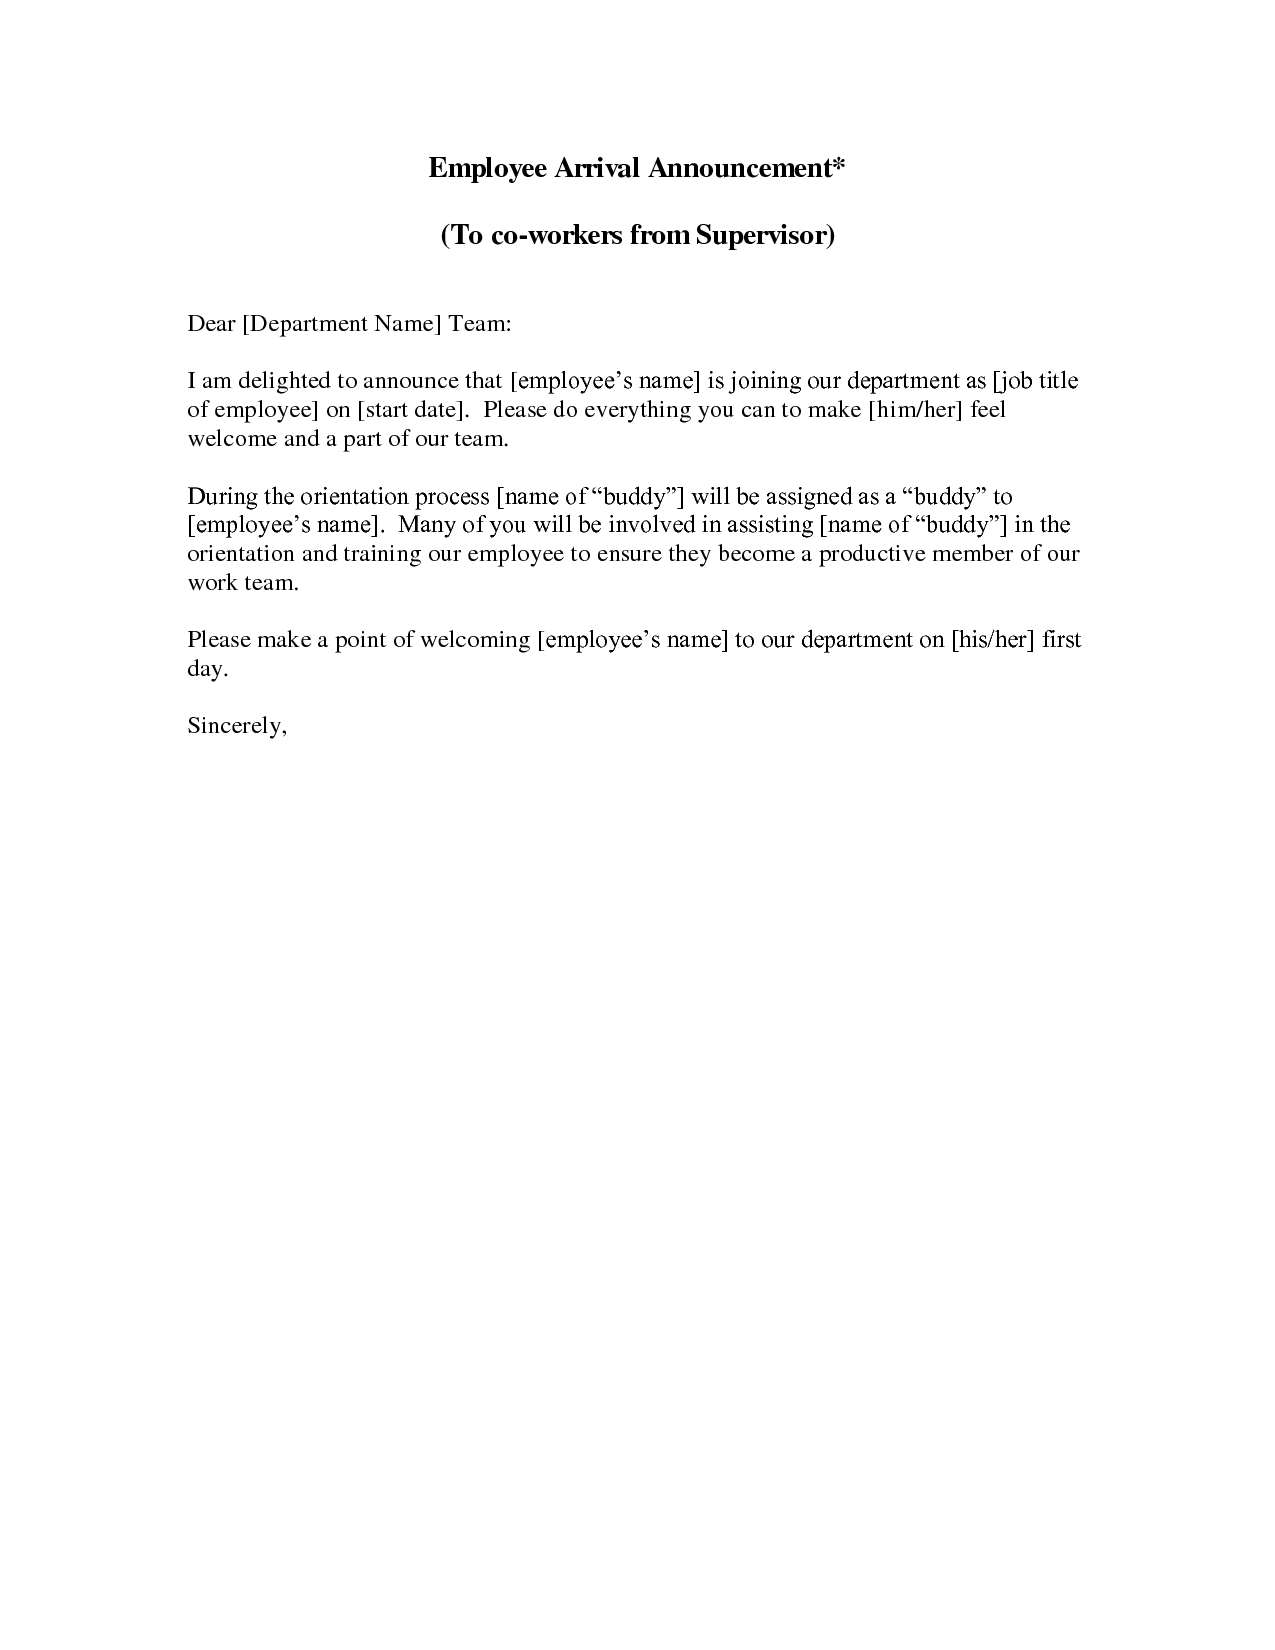 New employee announcement letter - This sample new employee ...